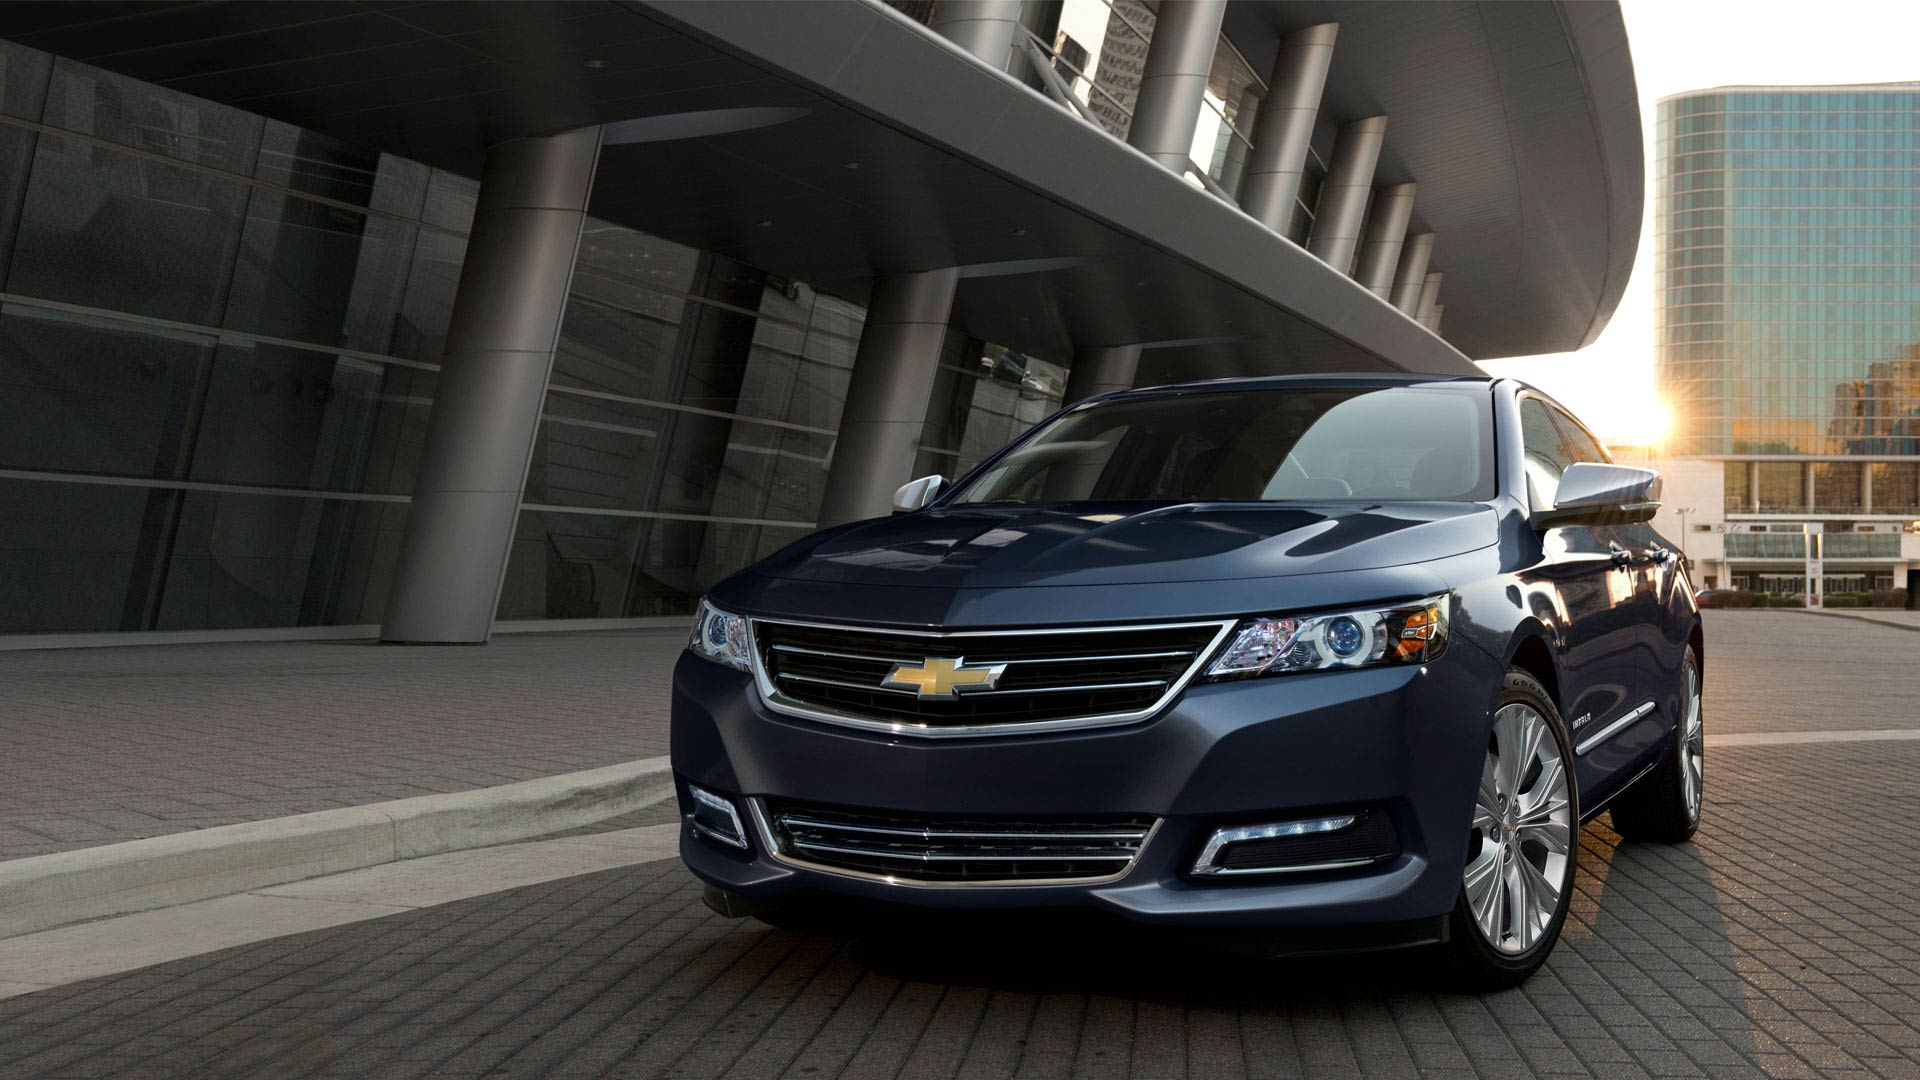 2016-chevrolet-impala-full-size-sedan-design-1480x551-